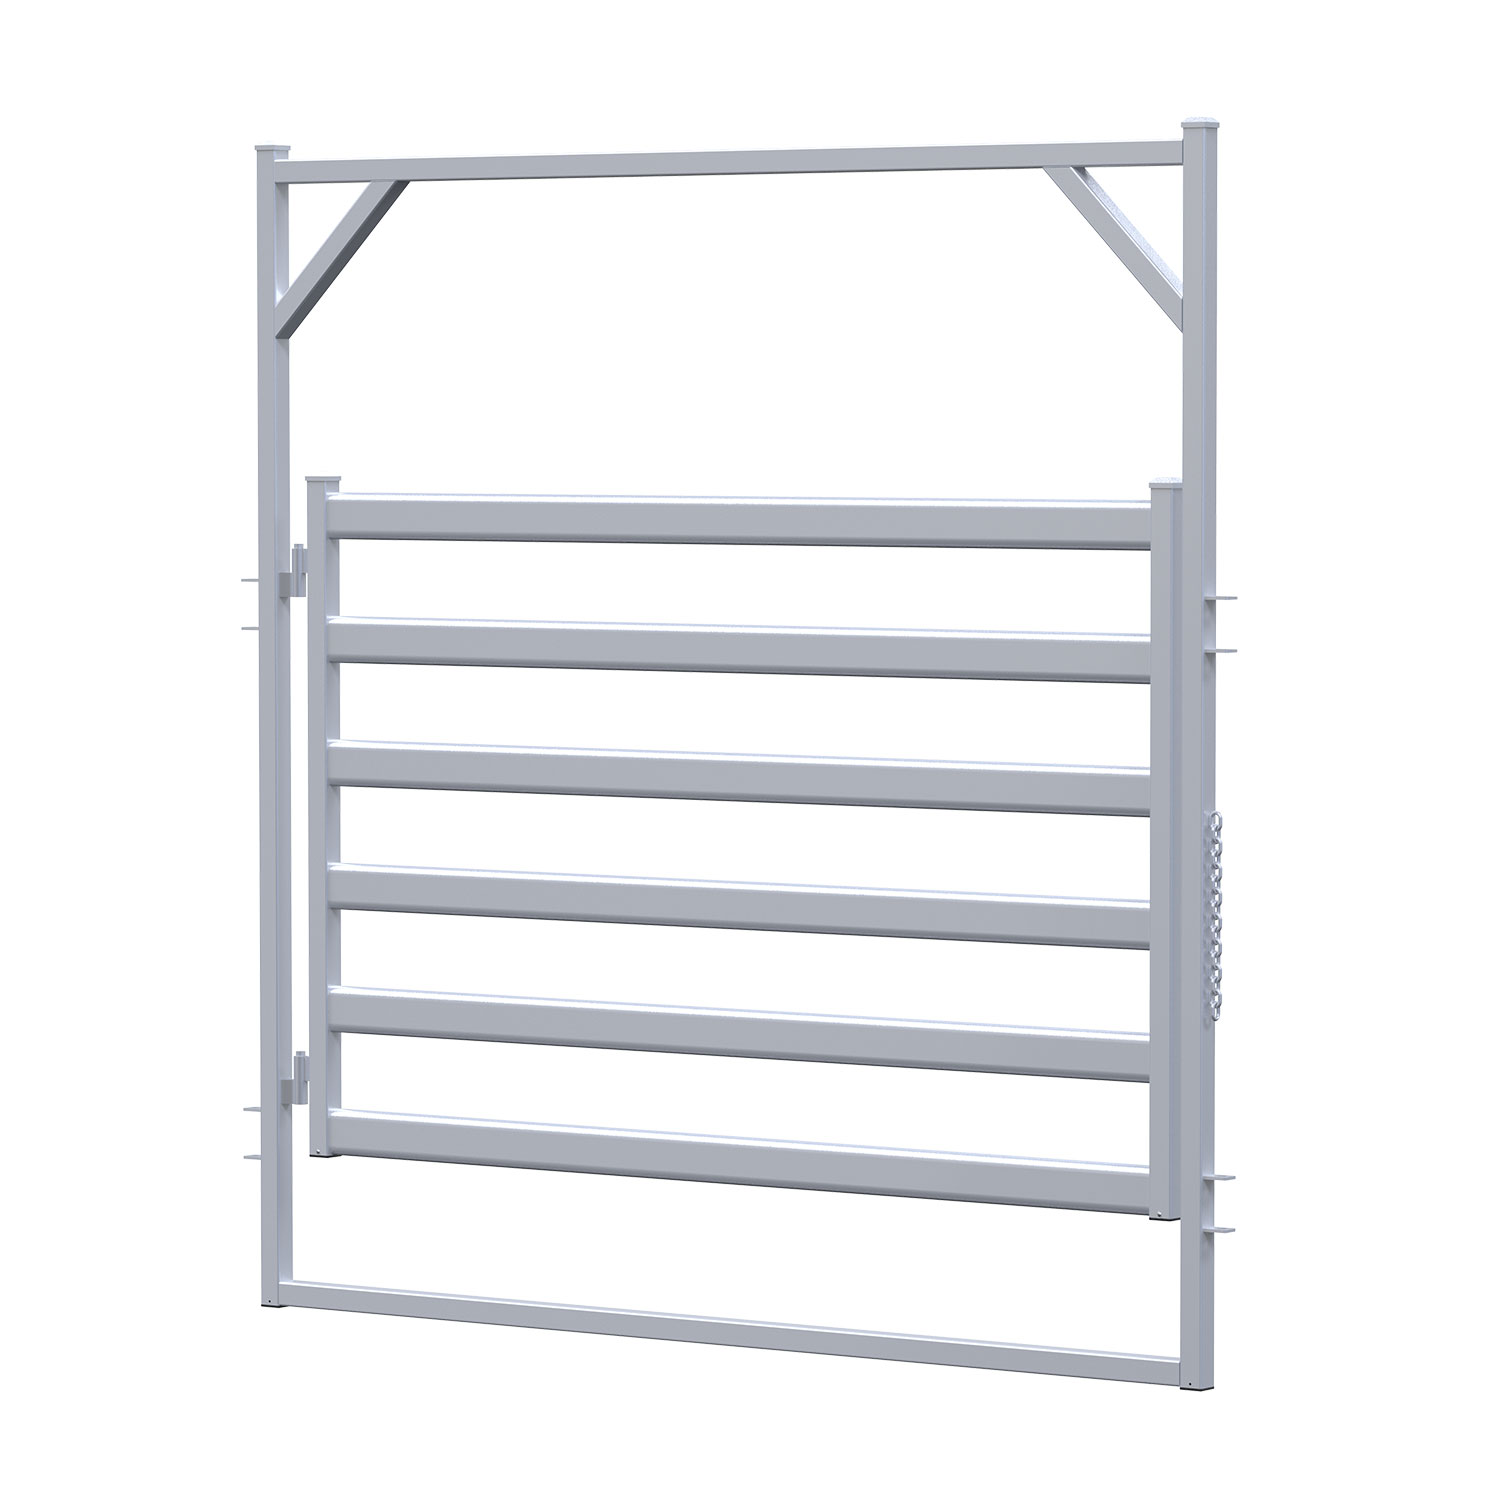 2.1m Calf Rail Gate In Frame